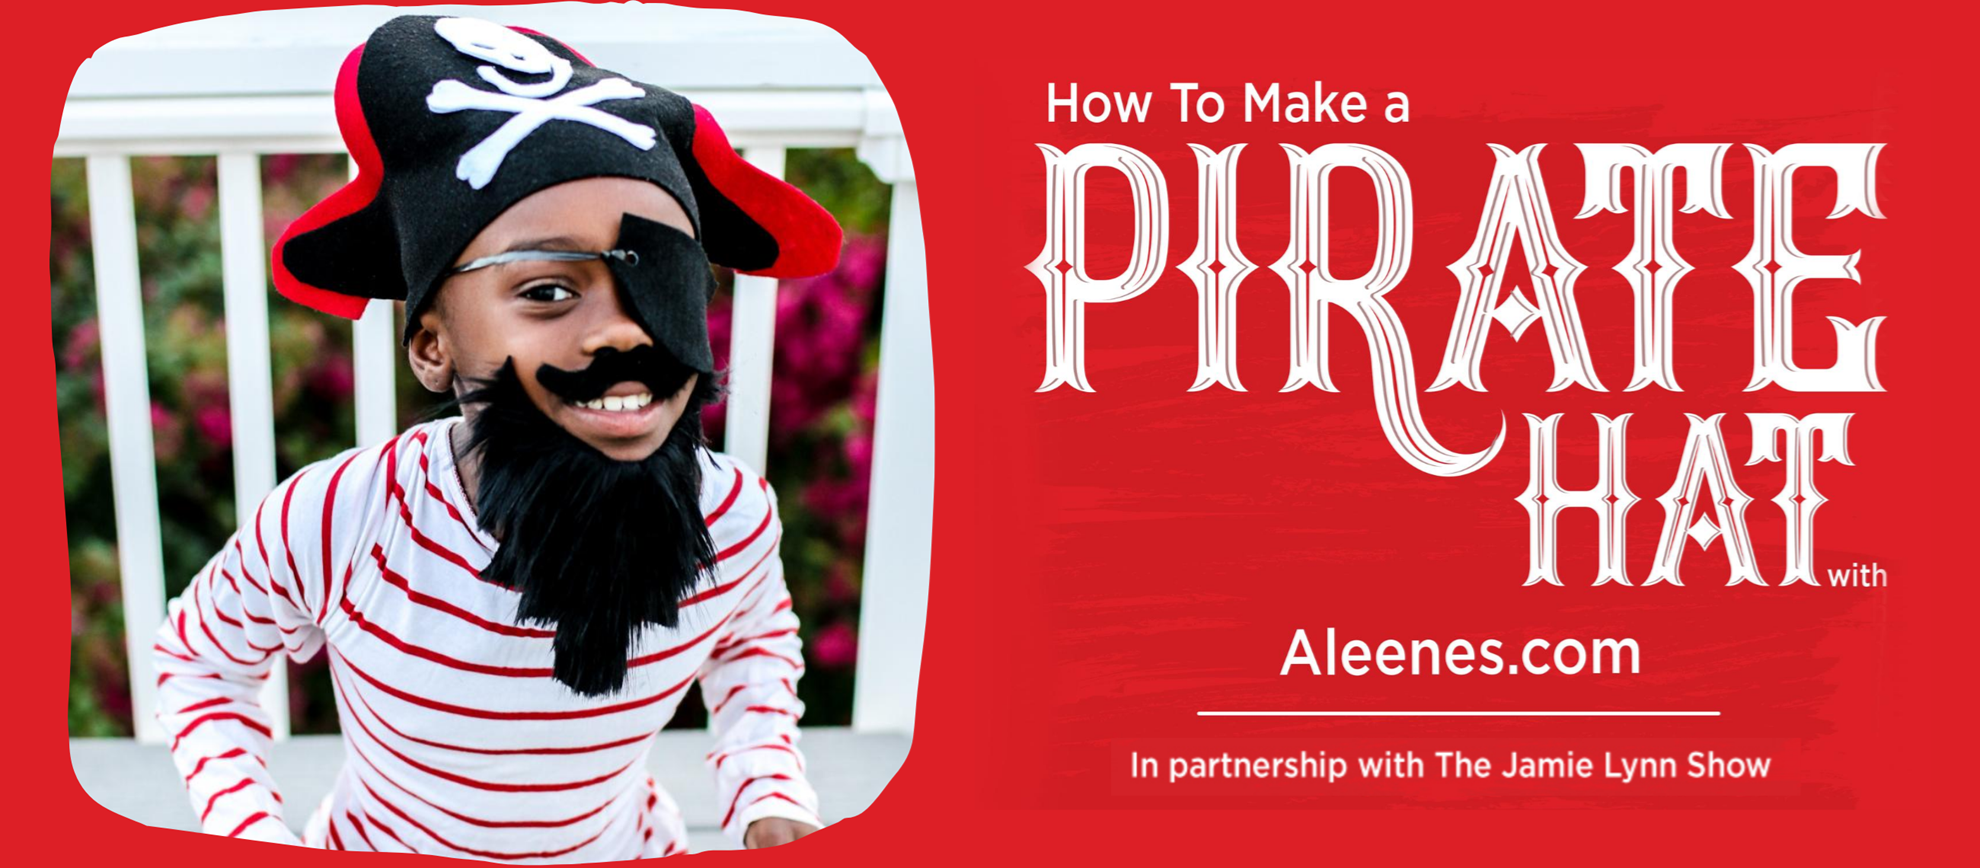 How to Make a Pirate Hat